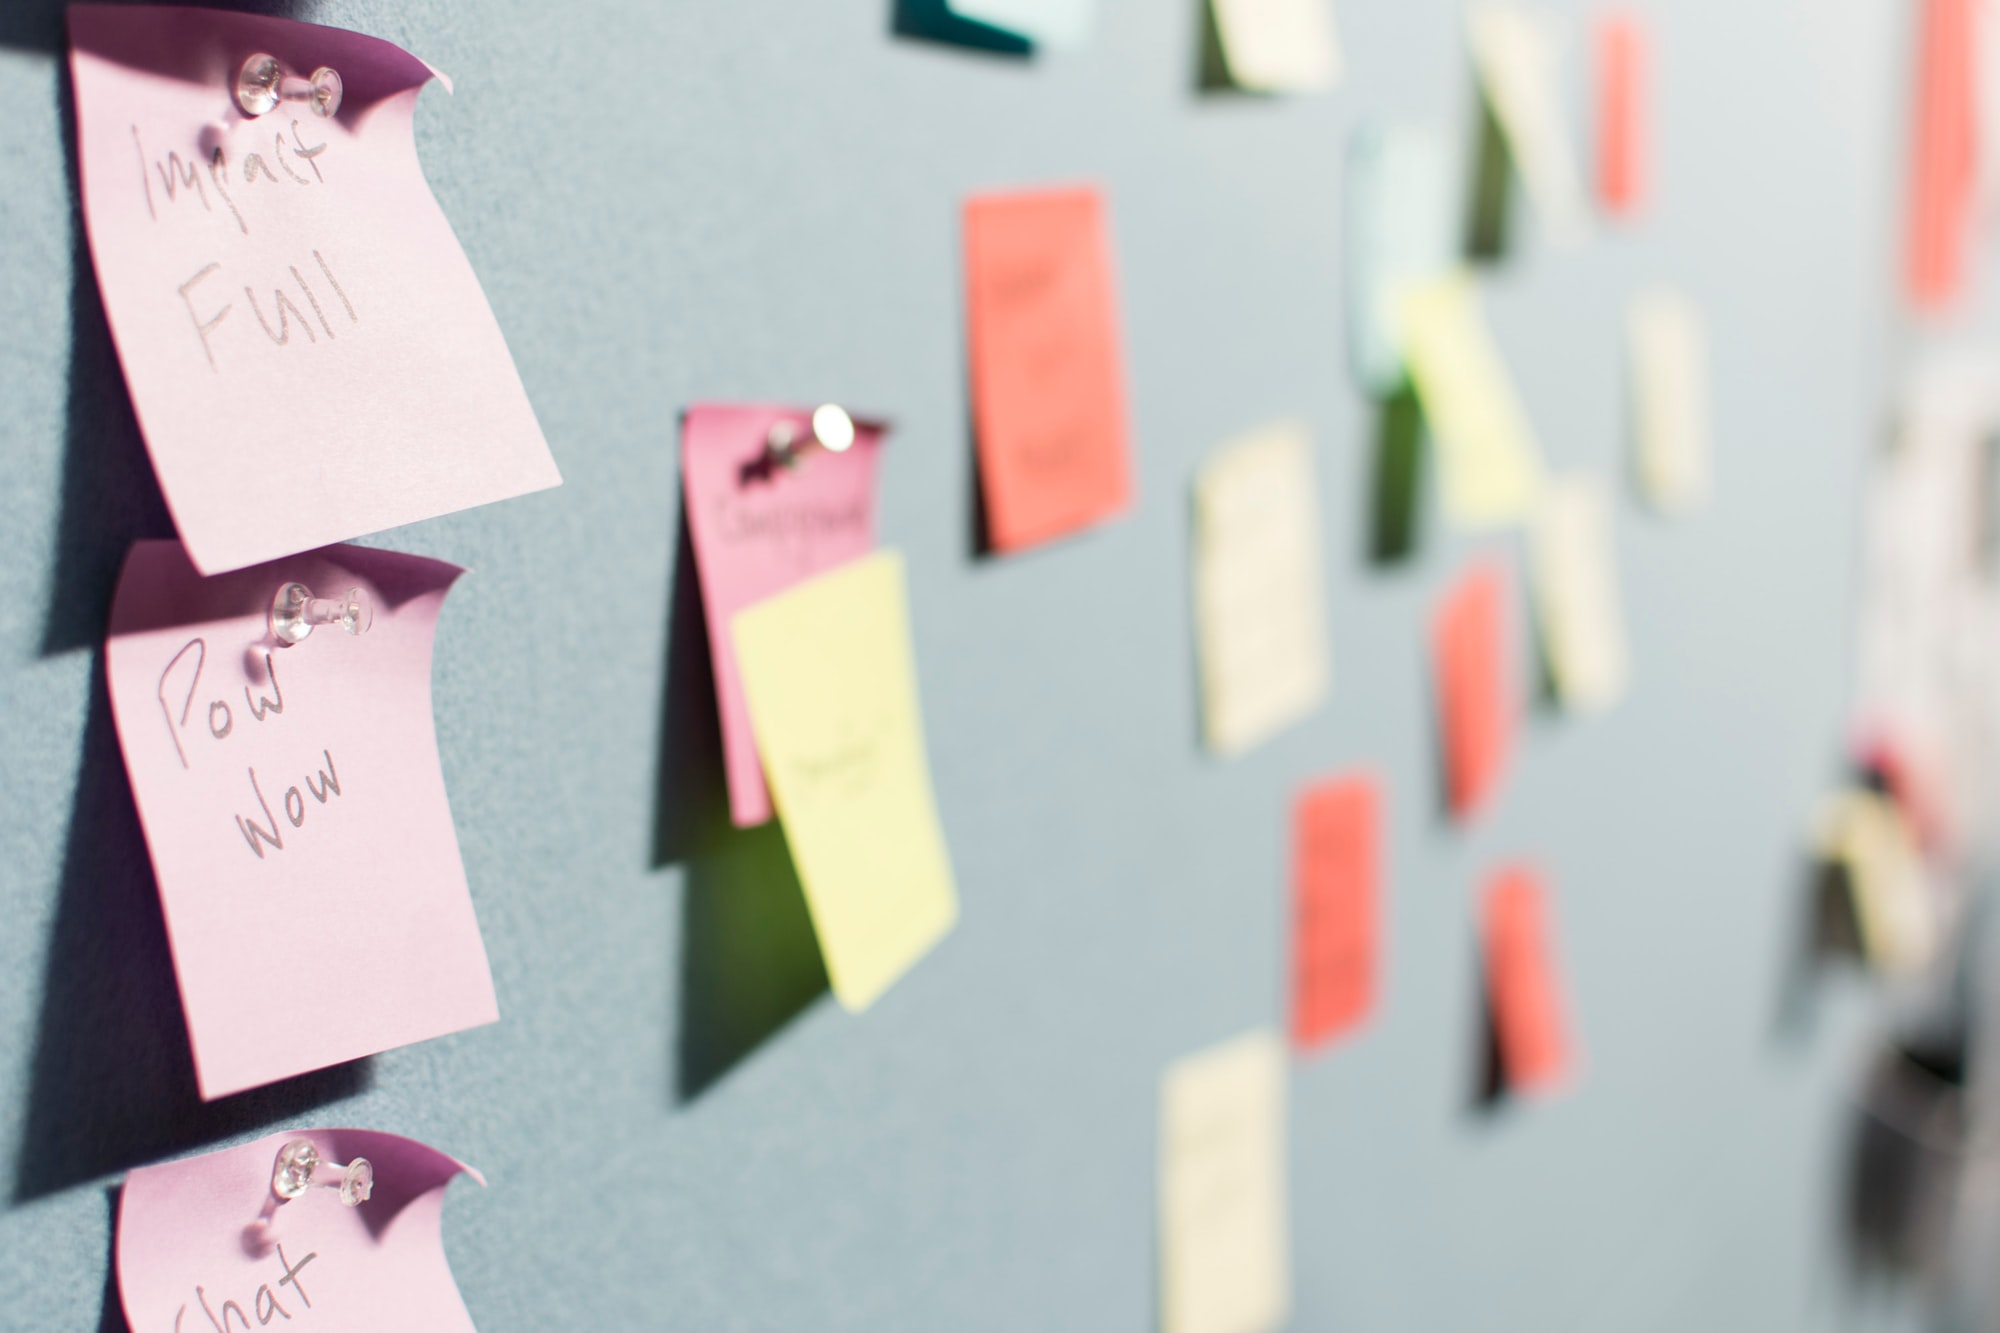 How to Brainstorm Ideas for Your Business